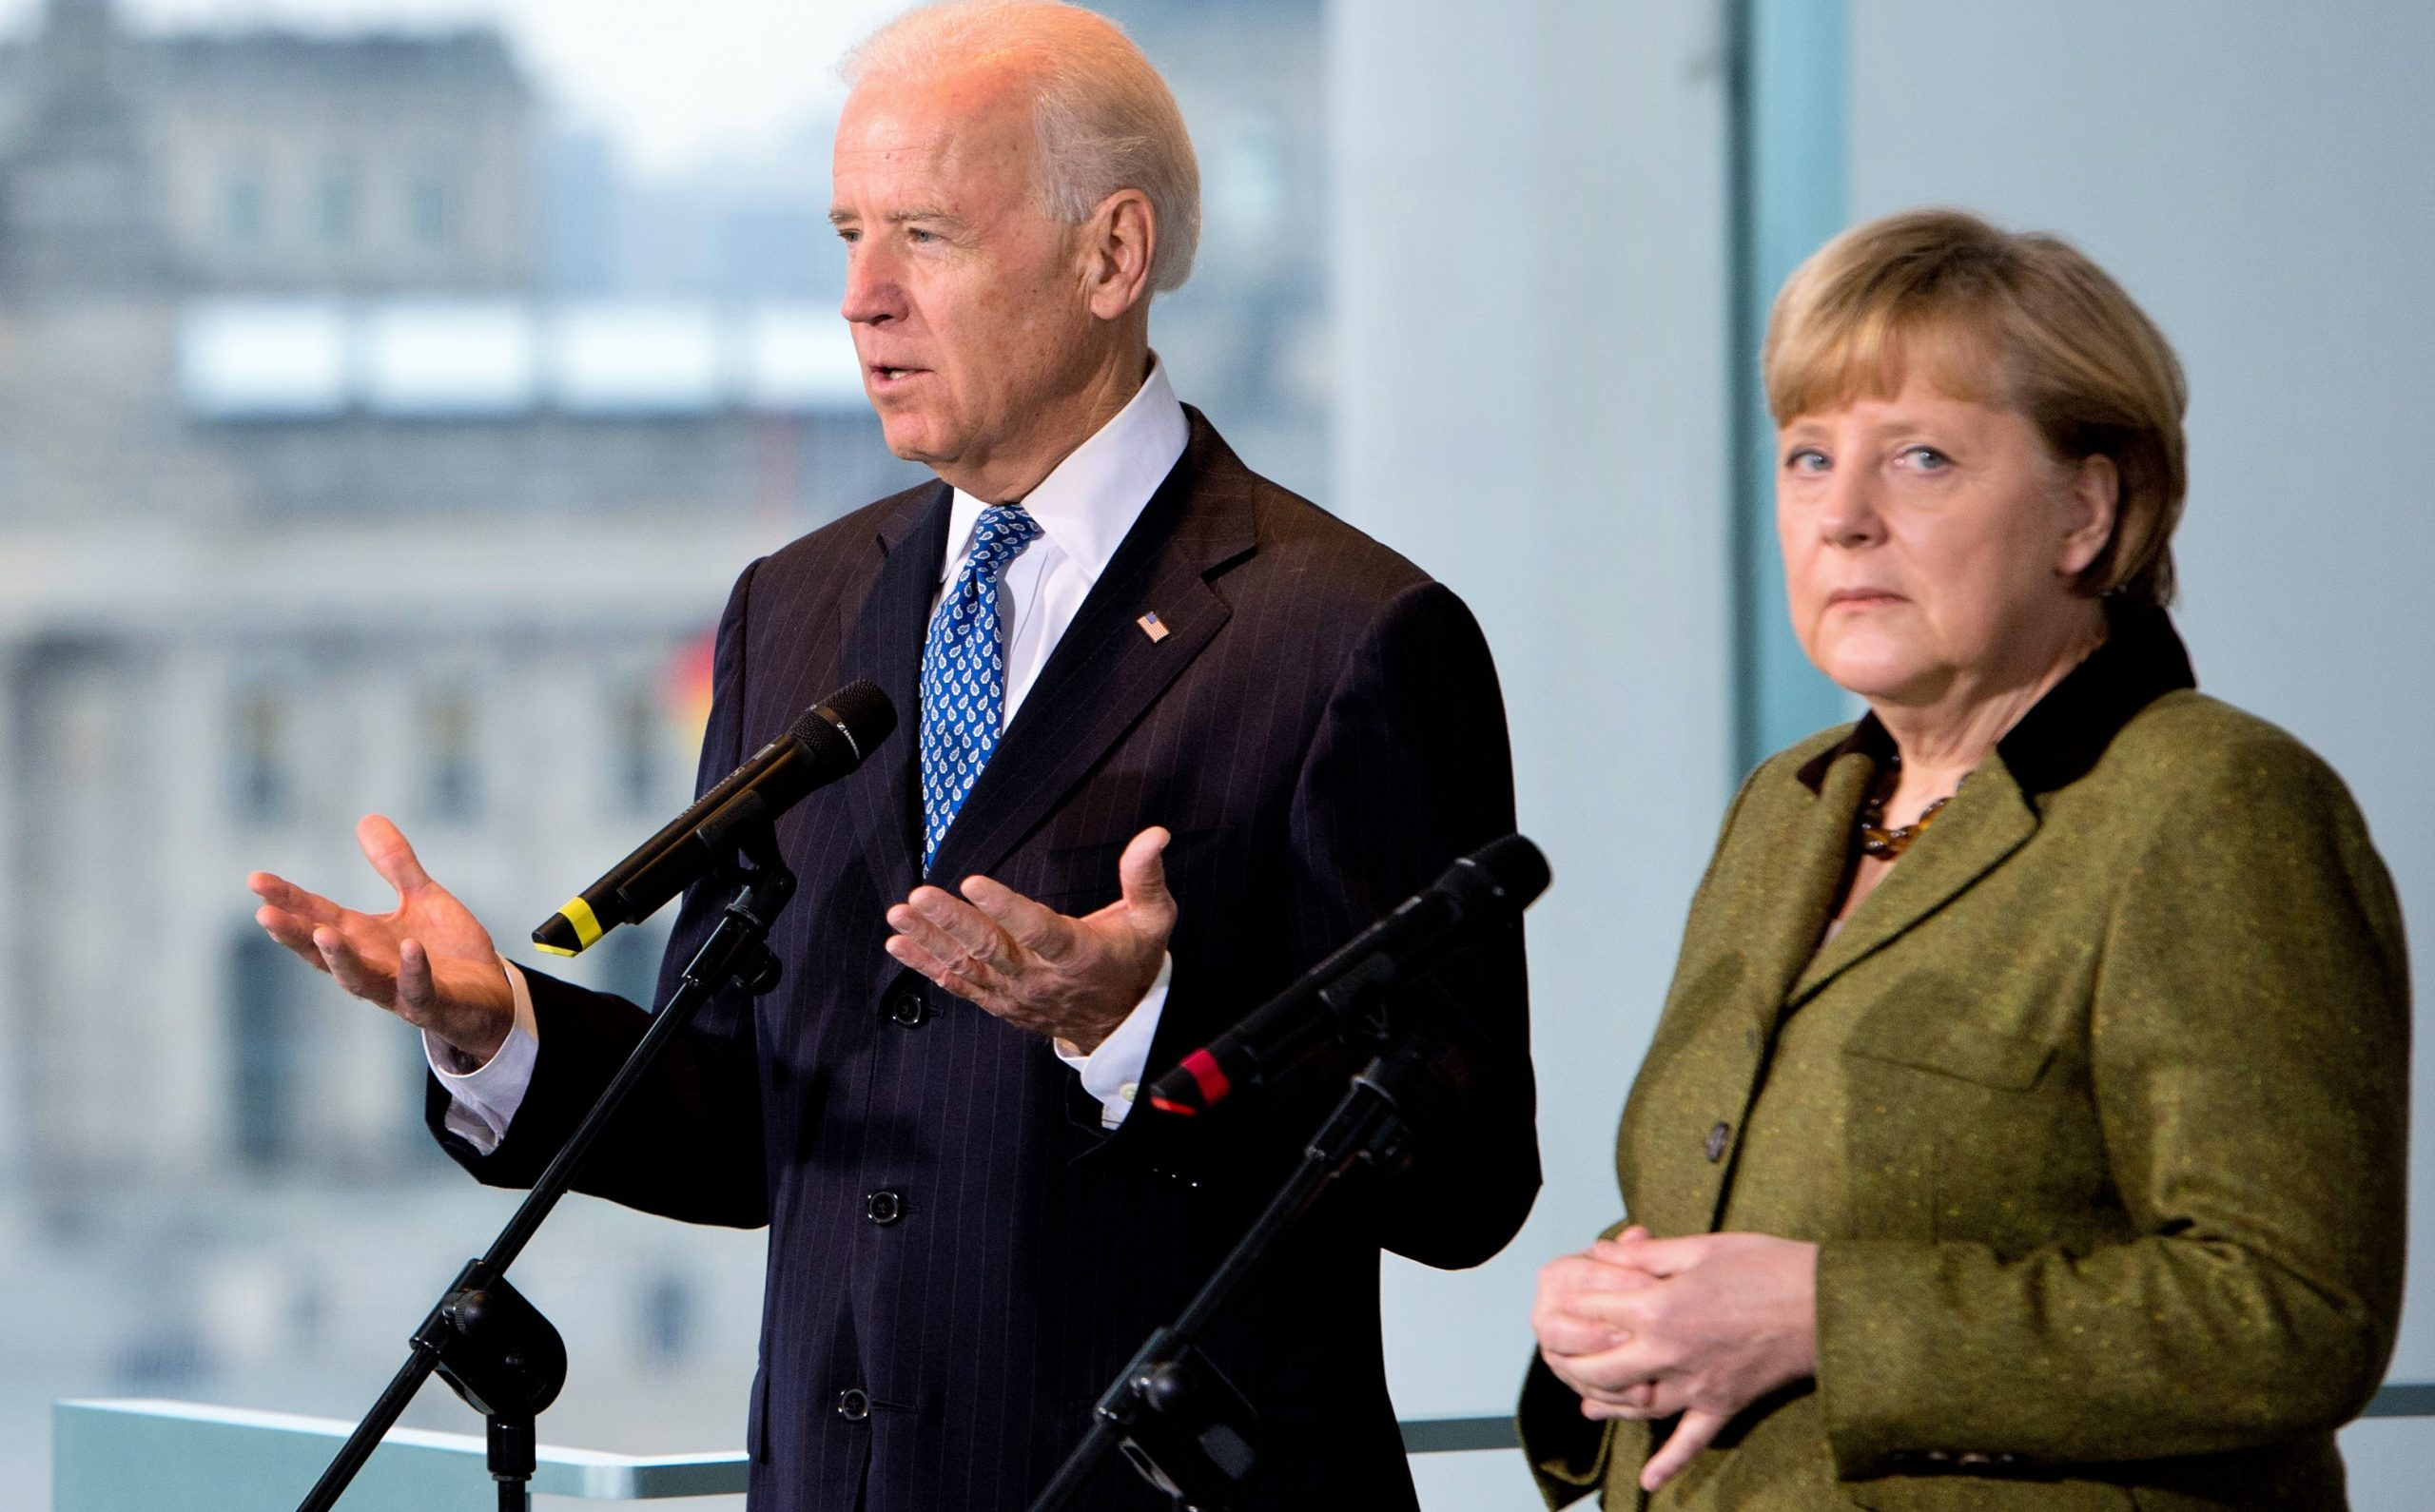 US Vice President Joe Biden and German Chancellor Angela Merkel (R) address journalists at the chancellery in Berlin on February 1, 2013. Biden is in Germany for talks with the German chancellor ahead of the Munich Security Conference. World leaders, ministers and top military brass attend three days of talks at the Munich Security Conference amid a US warning to Iran over stalled nuclear talks. AFP PHOTO / JOHANNES EISELE        (Photo credit should read JOHANNES EISELE/AFP/Getty Images)